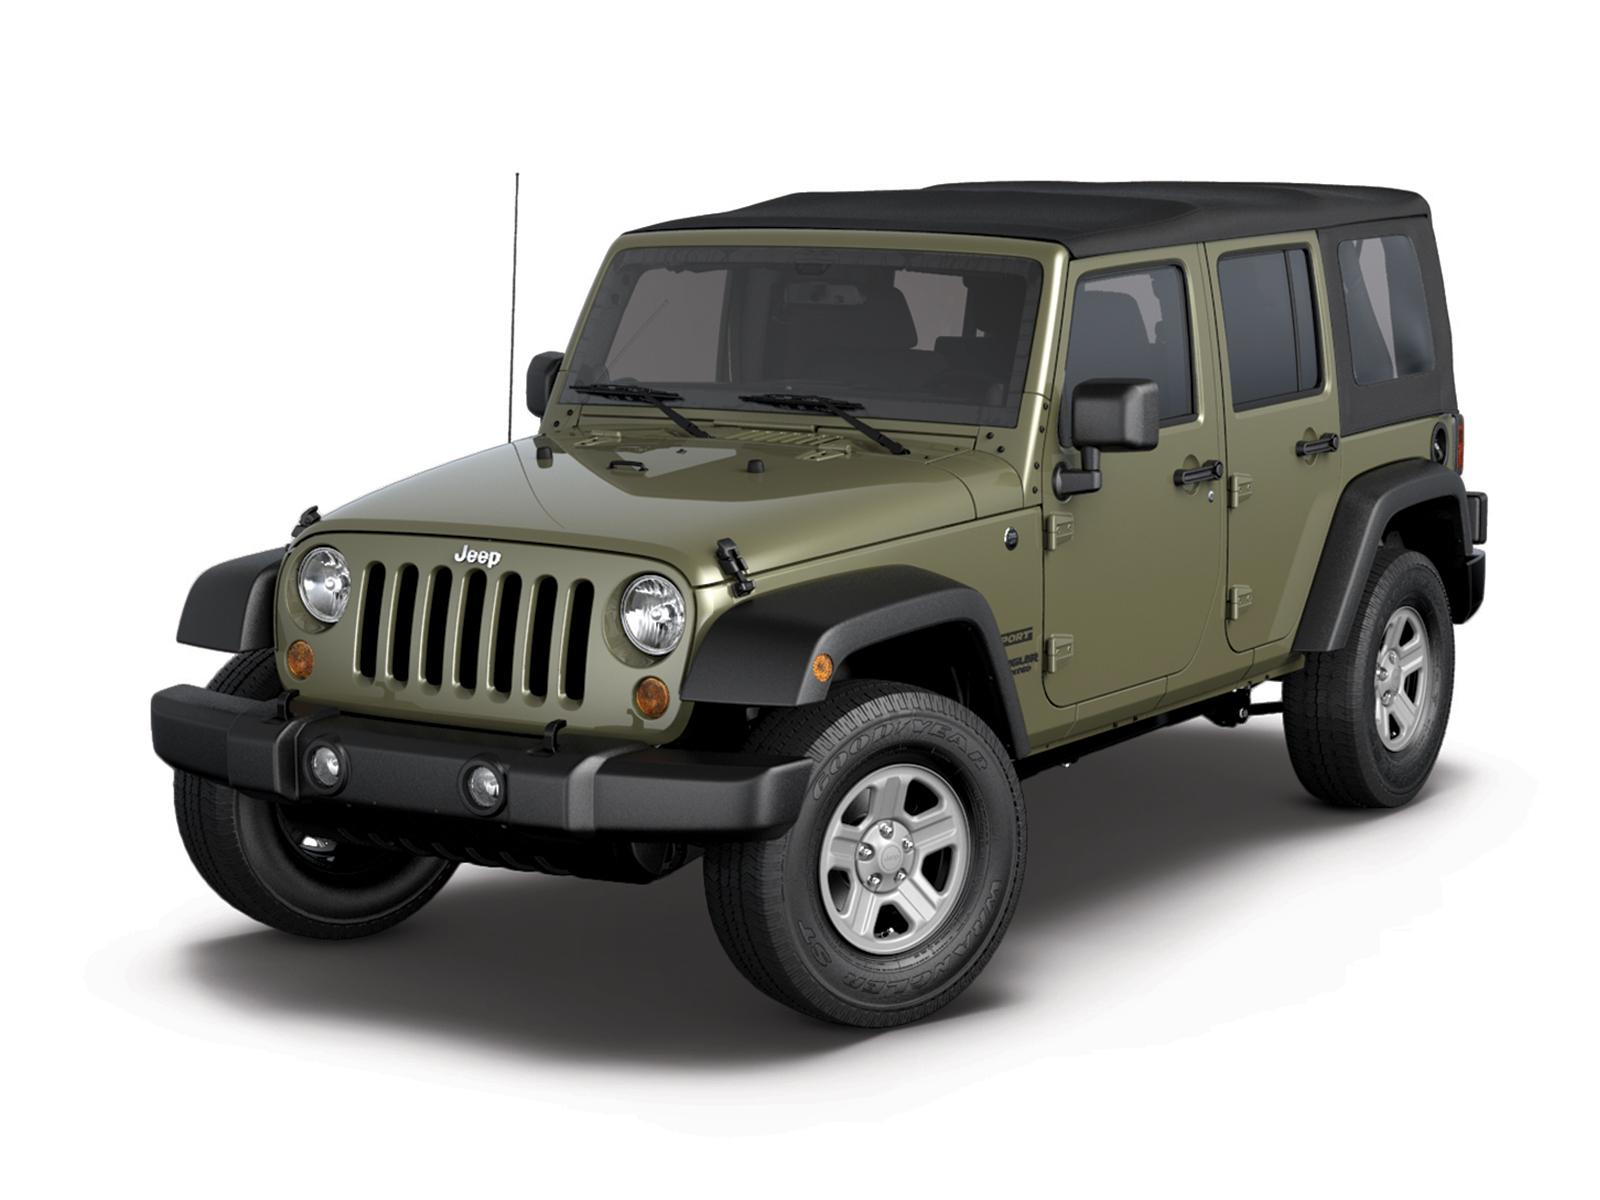 jeep wrangler unlimited 2013. Black Bedroom Furniture Sets. Home Design Ideas